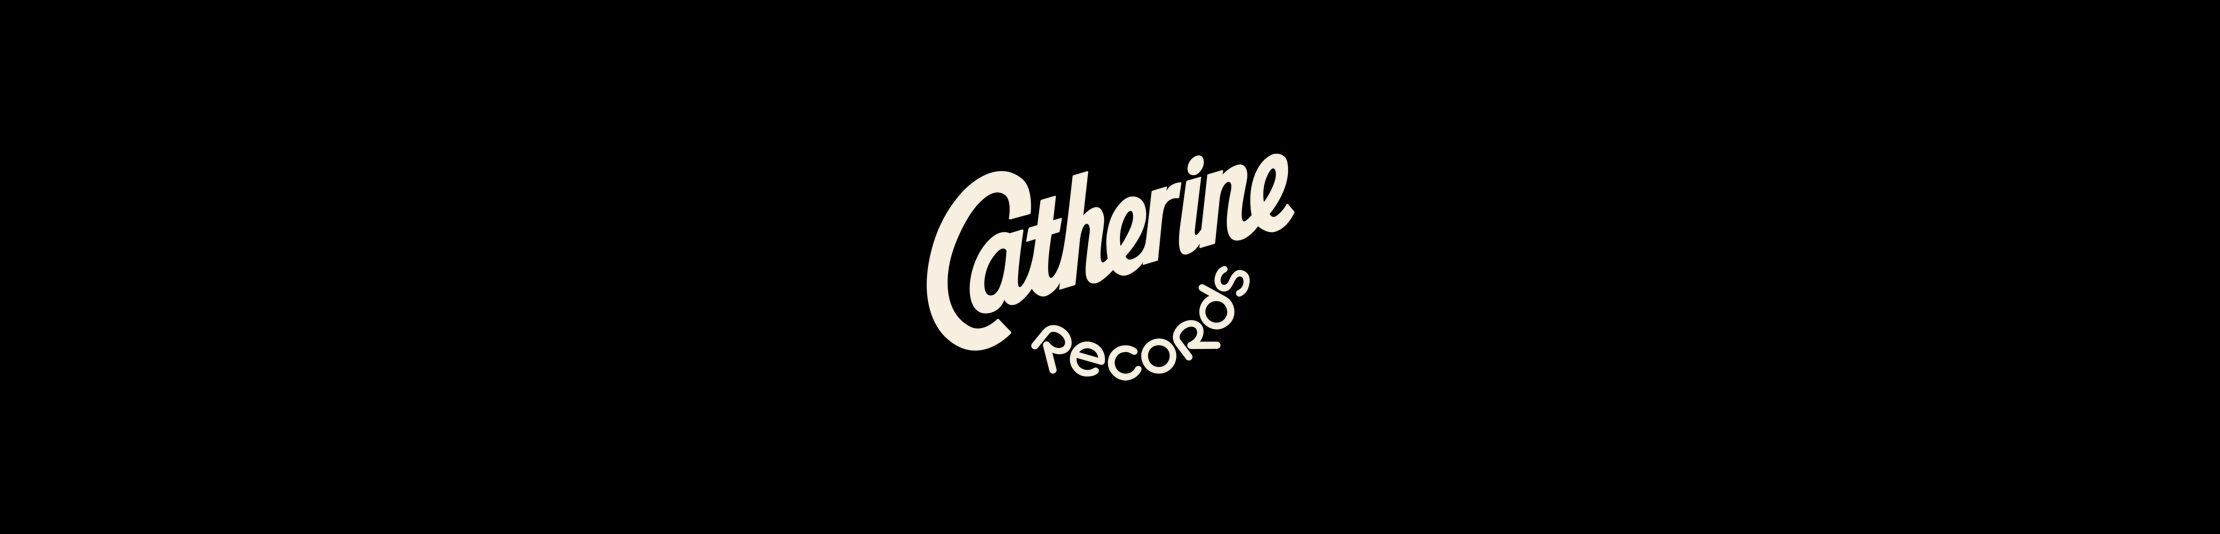 Catherine Records.png